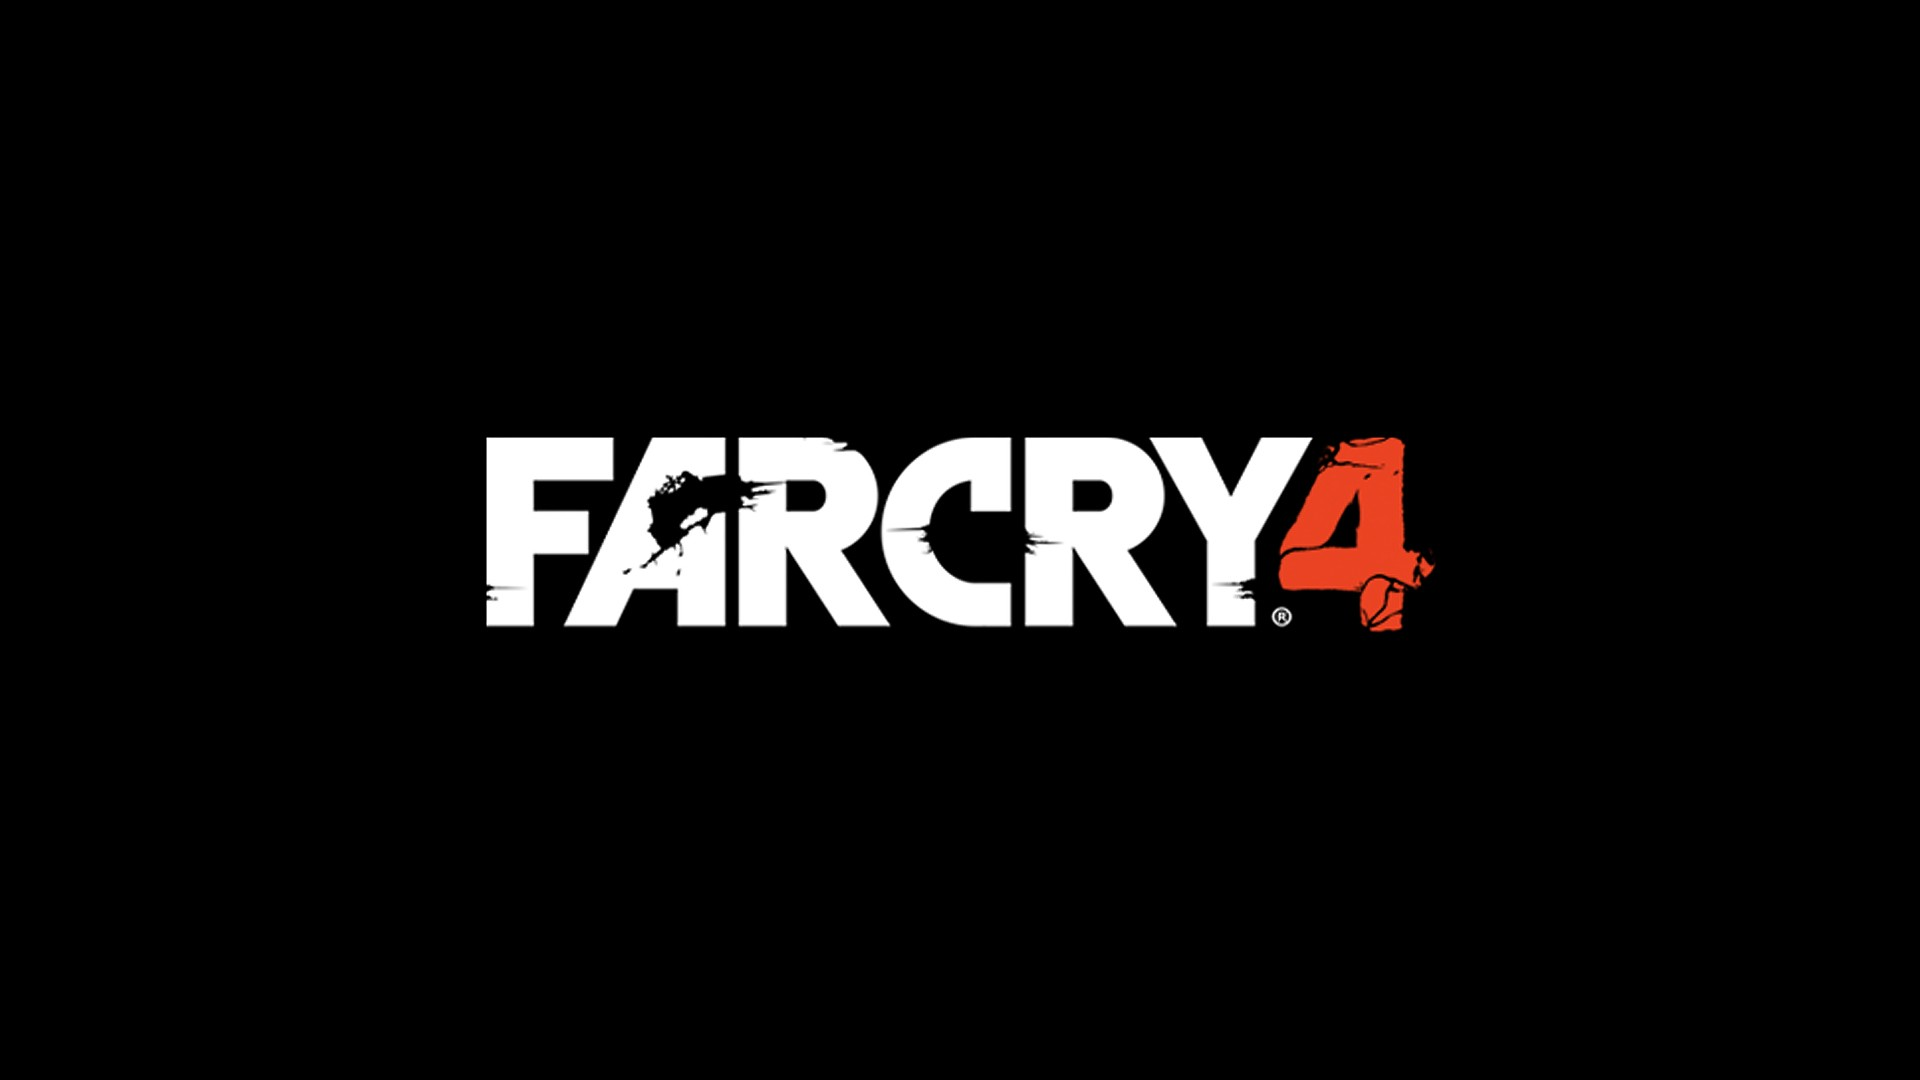 far cry 4 logo wallpaper 43193 44225 hd wallpapers jpg 1416